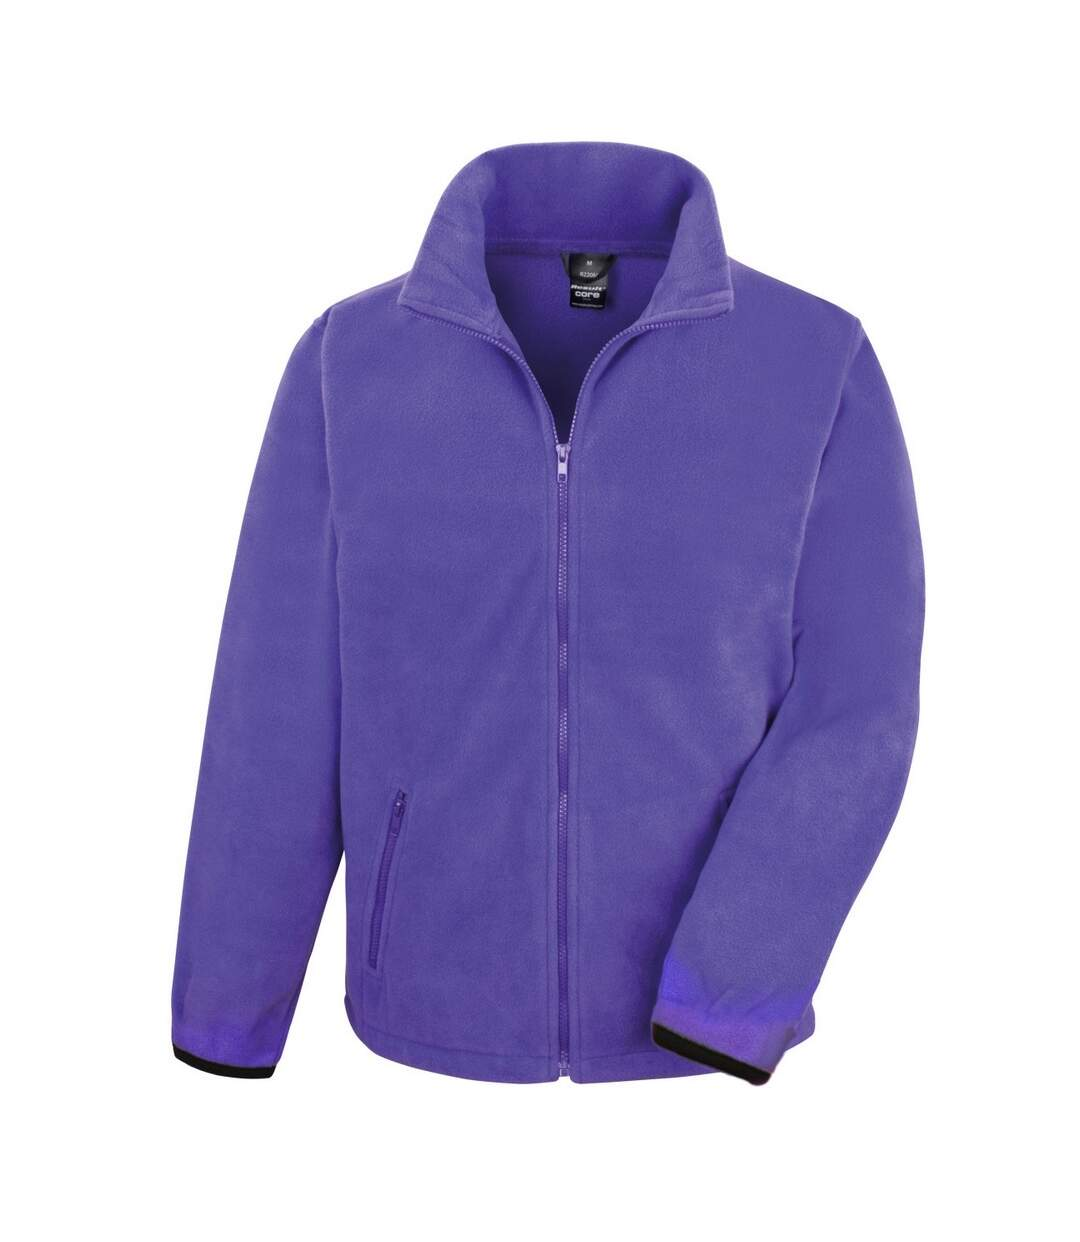 Result Mens Core Fashion Fit Outdoor Fleece Jacket (Purple) - UTBC912